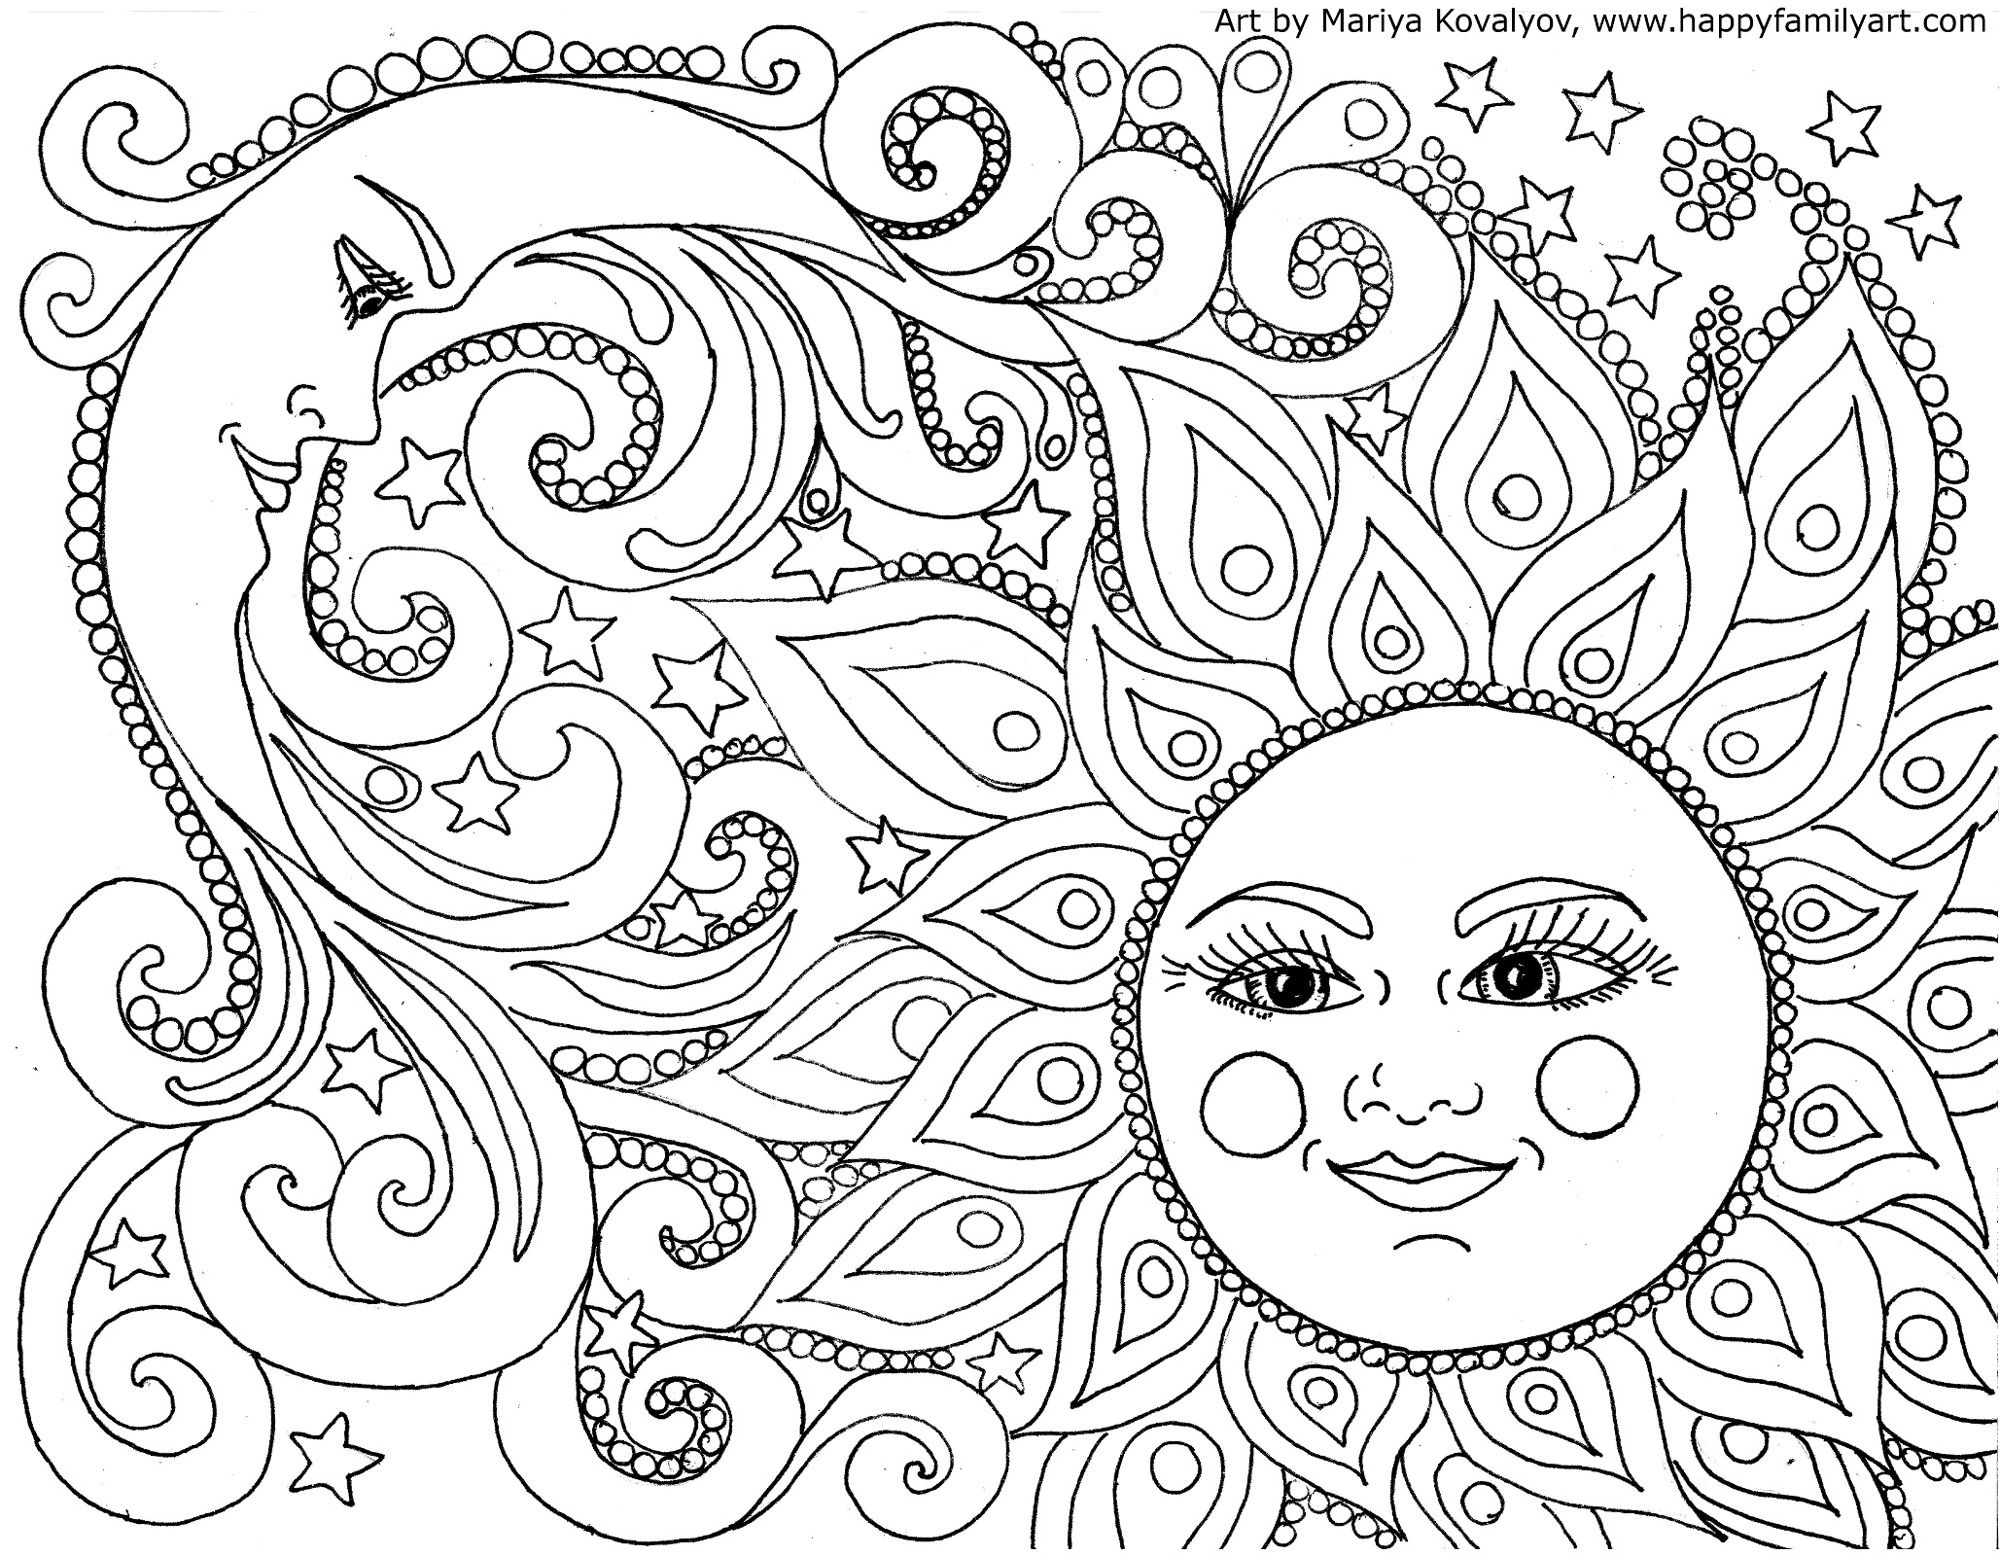 adults coloring book online : I Made Many Great Fun And Original Coloring Pages Color Your Heart Out